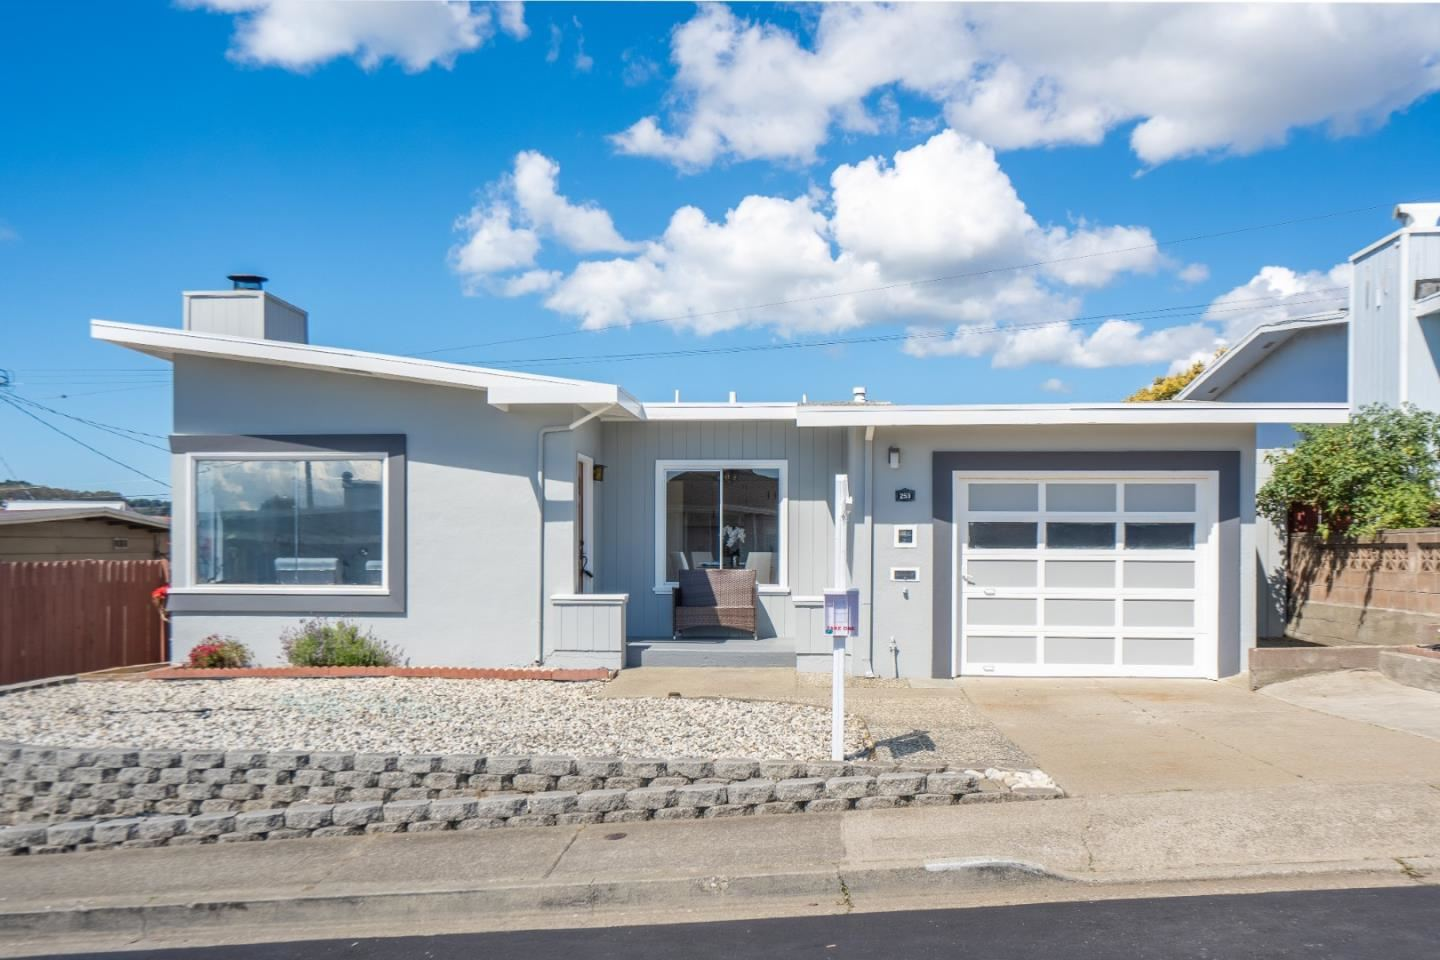 Photo for 253 Ferndale AVE, SOUTH SAN FRANCISCO, CA 94080 (MLS # ML81787930)